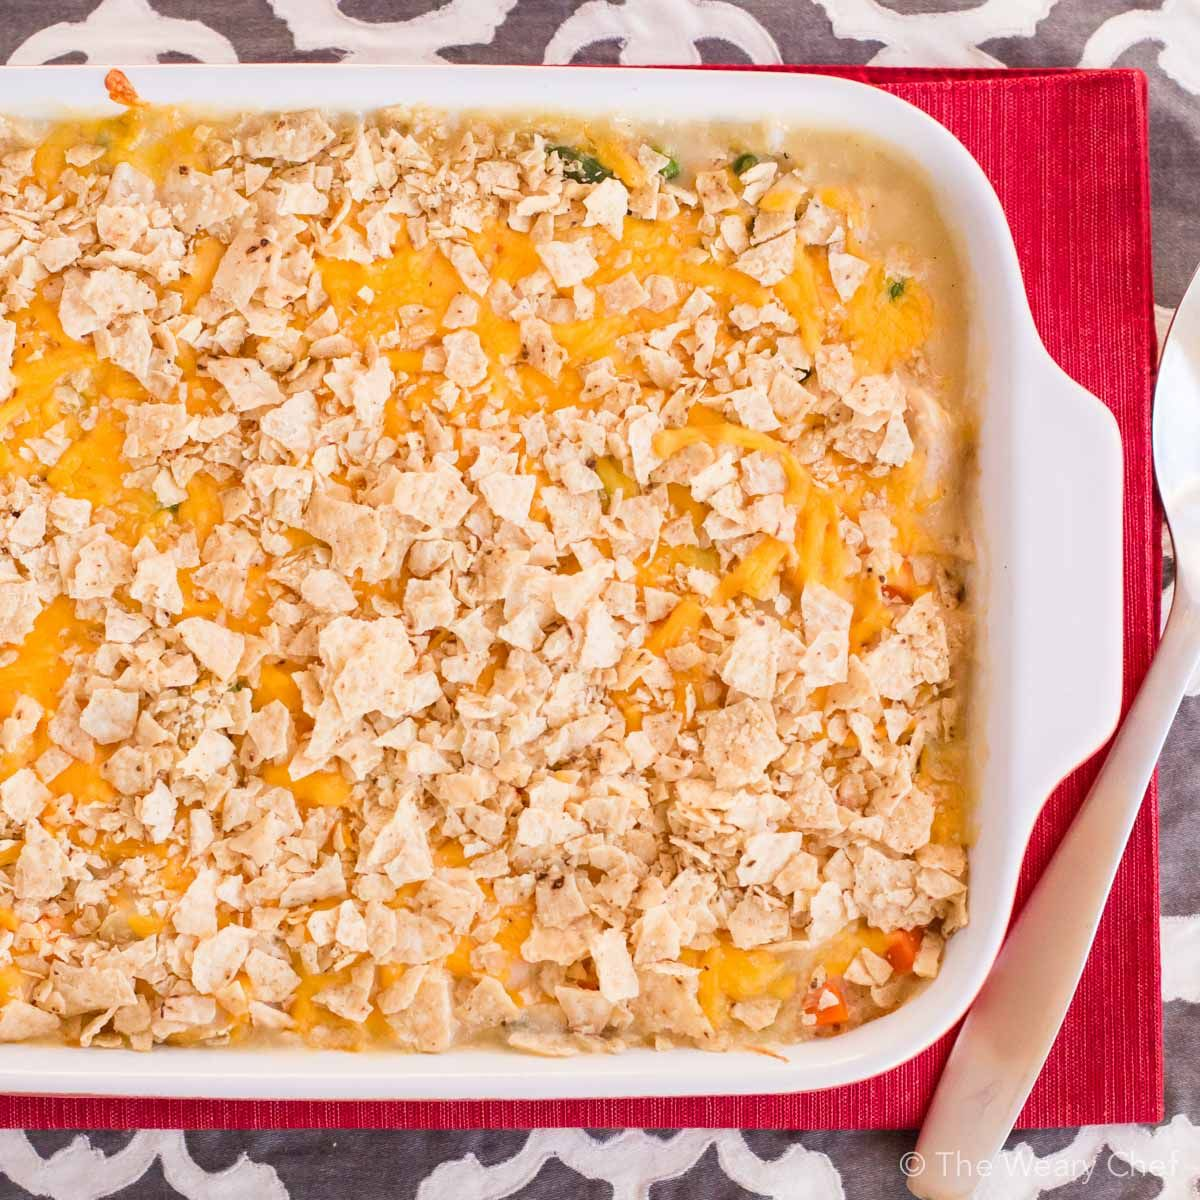 This chicken and vegetable quinoa casserole is loaded with tender chunks of chicken and cheddar cheese, then topped with crunchy tortilla chips. Such a satisfying and easy dinner recipe!